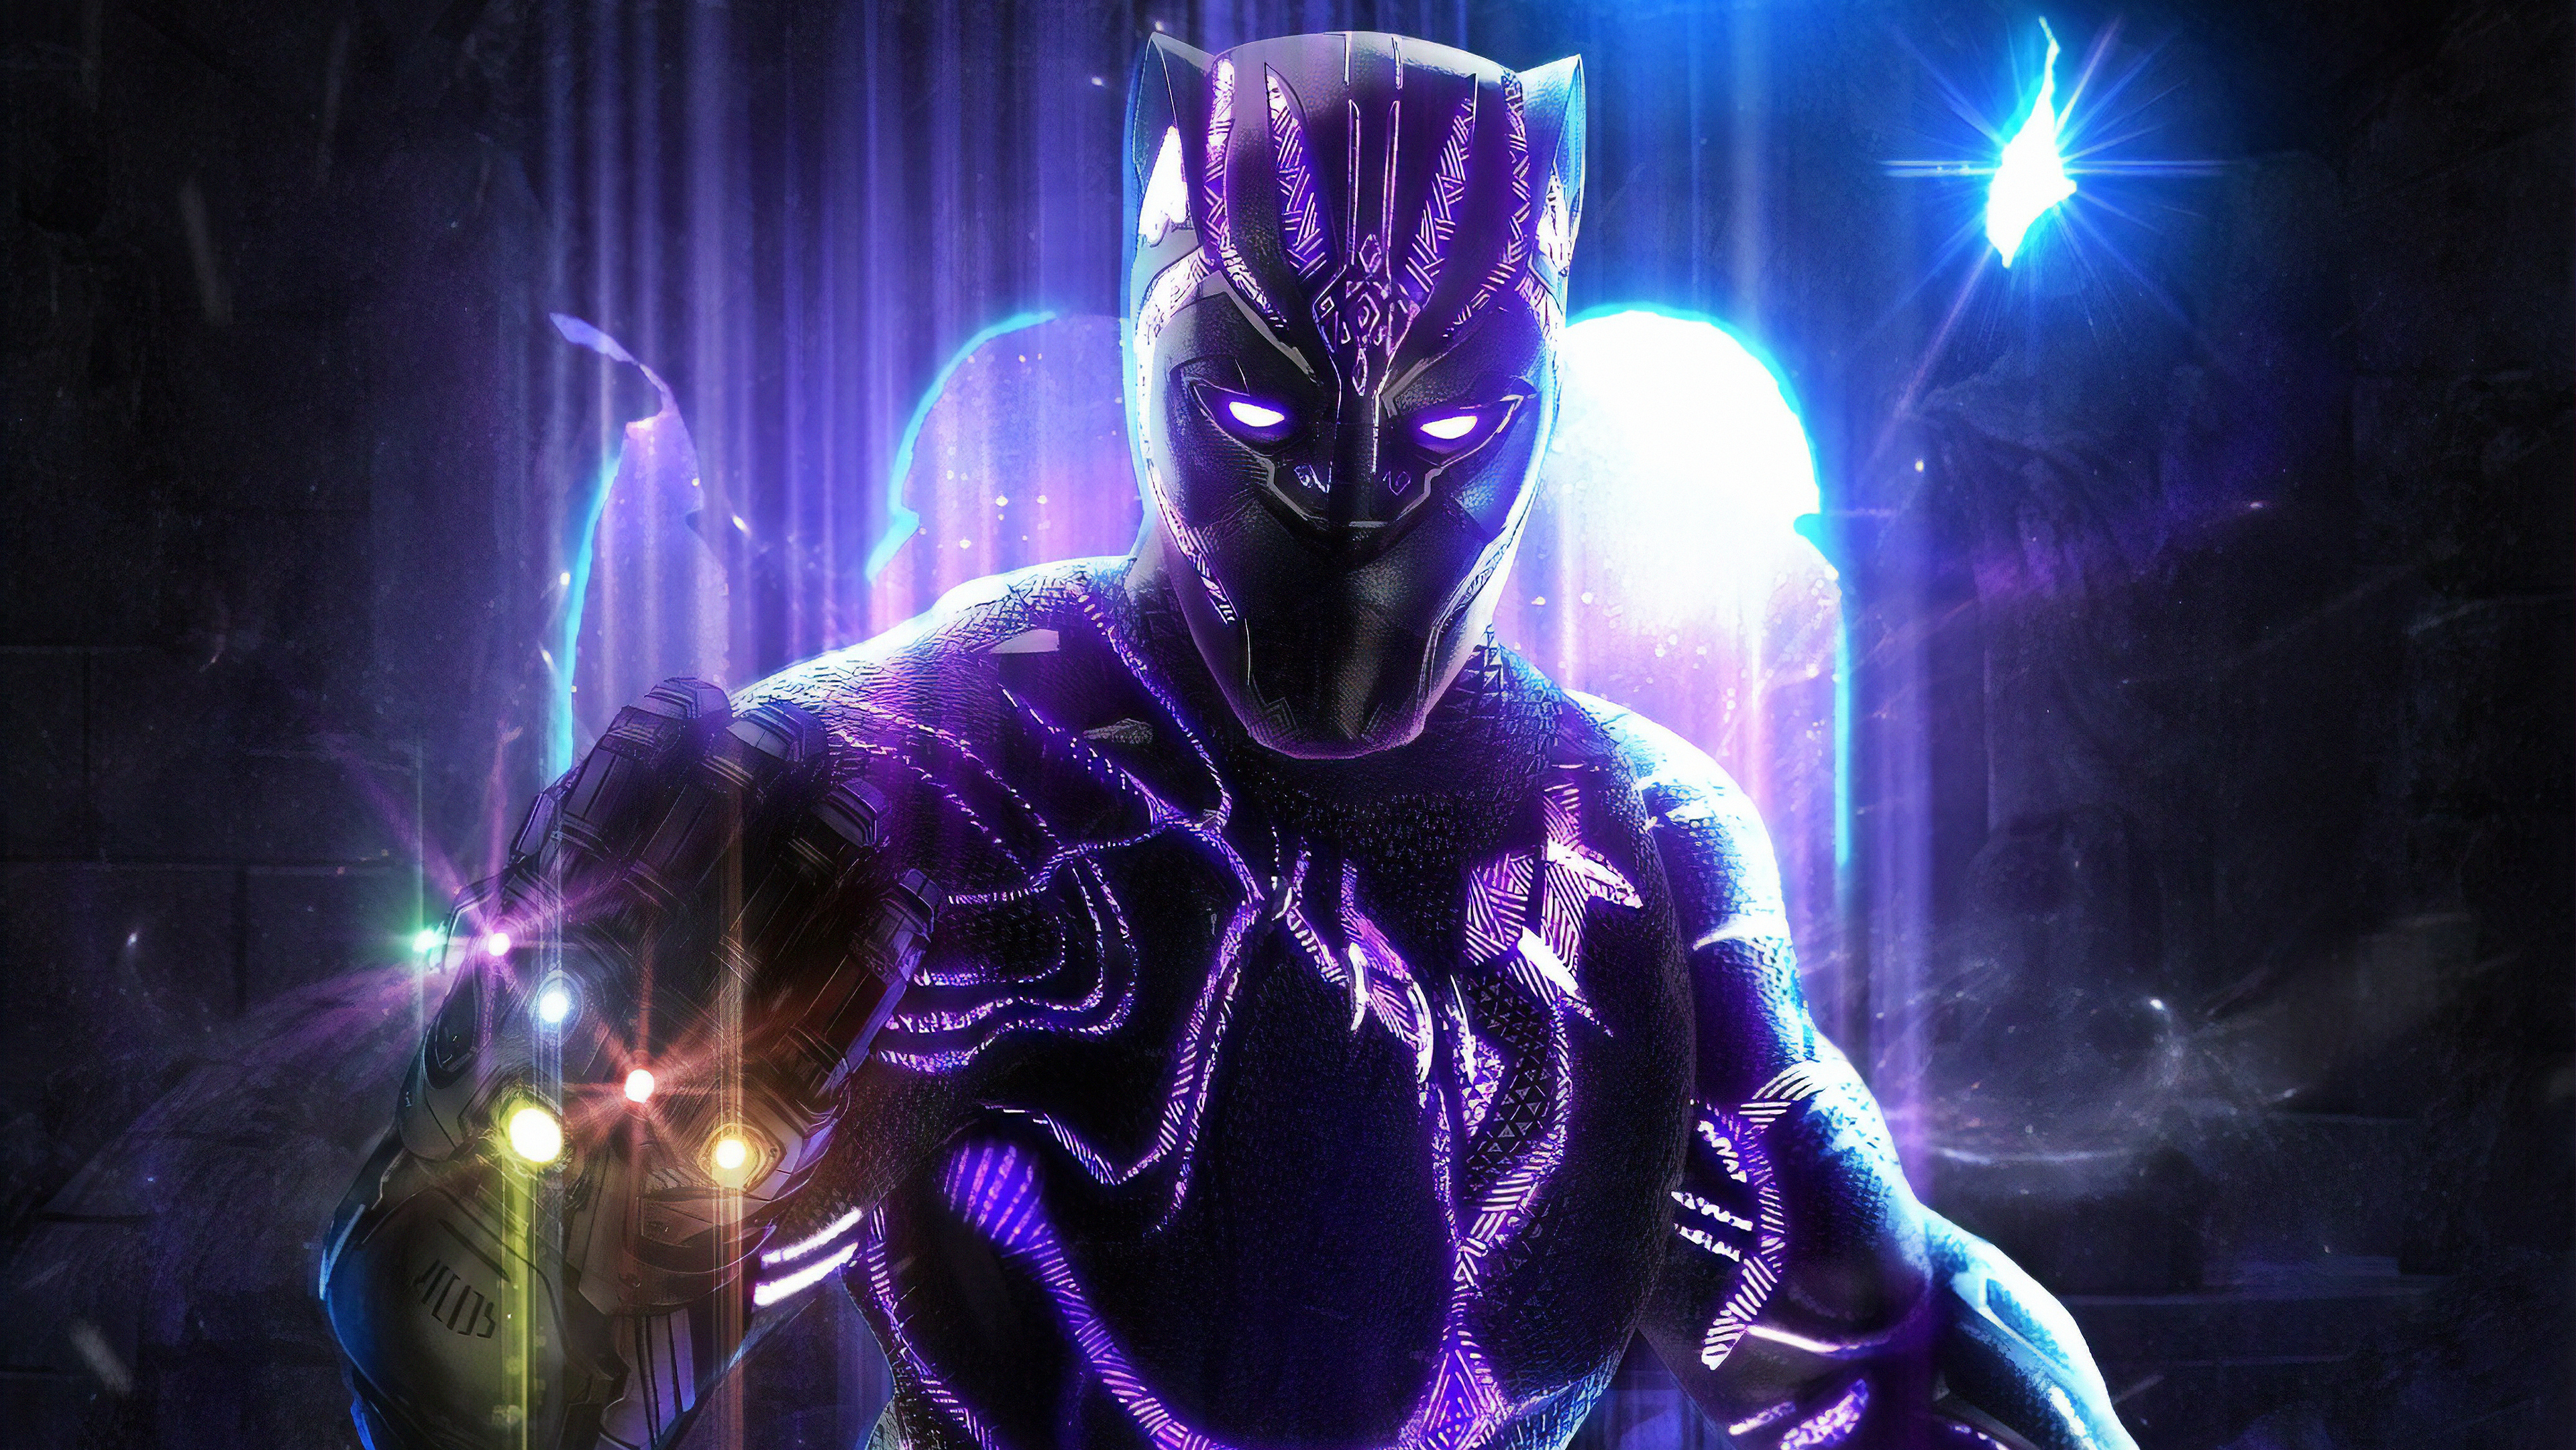 640x1136 Black Panther With Infinity Gauntlet Iphone 5 5c 5s Se Ipod Touch Hd 4k Wallpapers Images Backgrounds Photos And Pictures